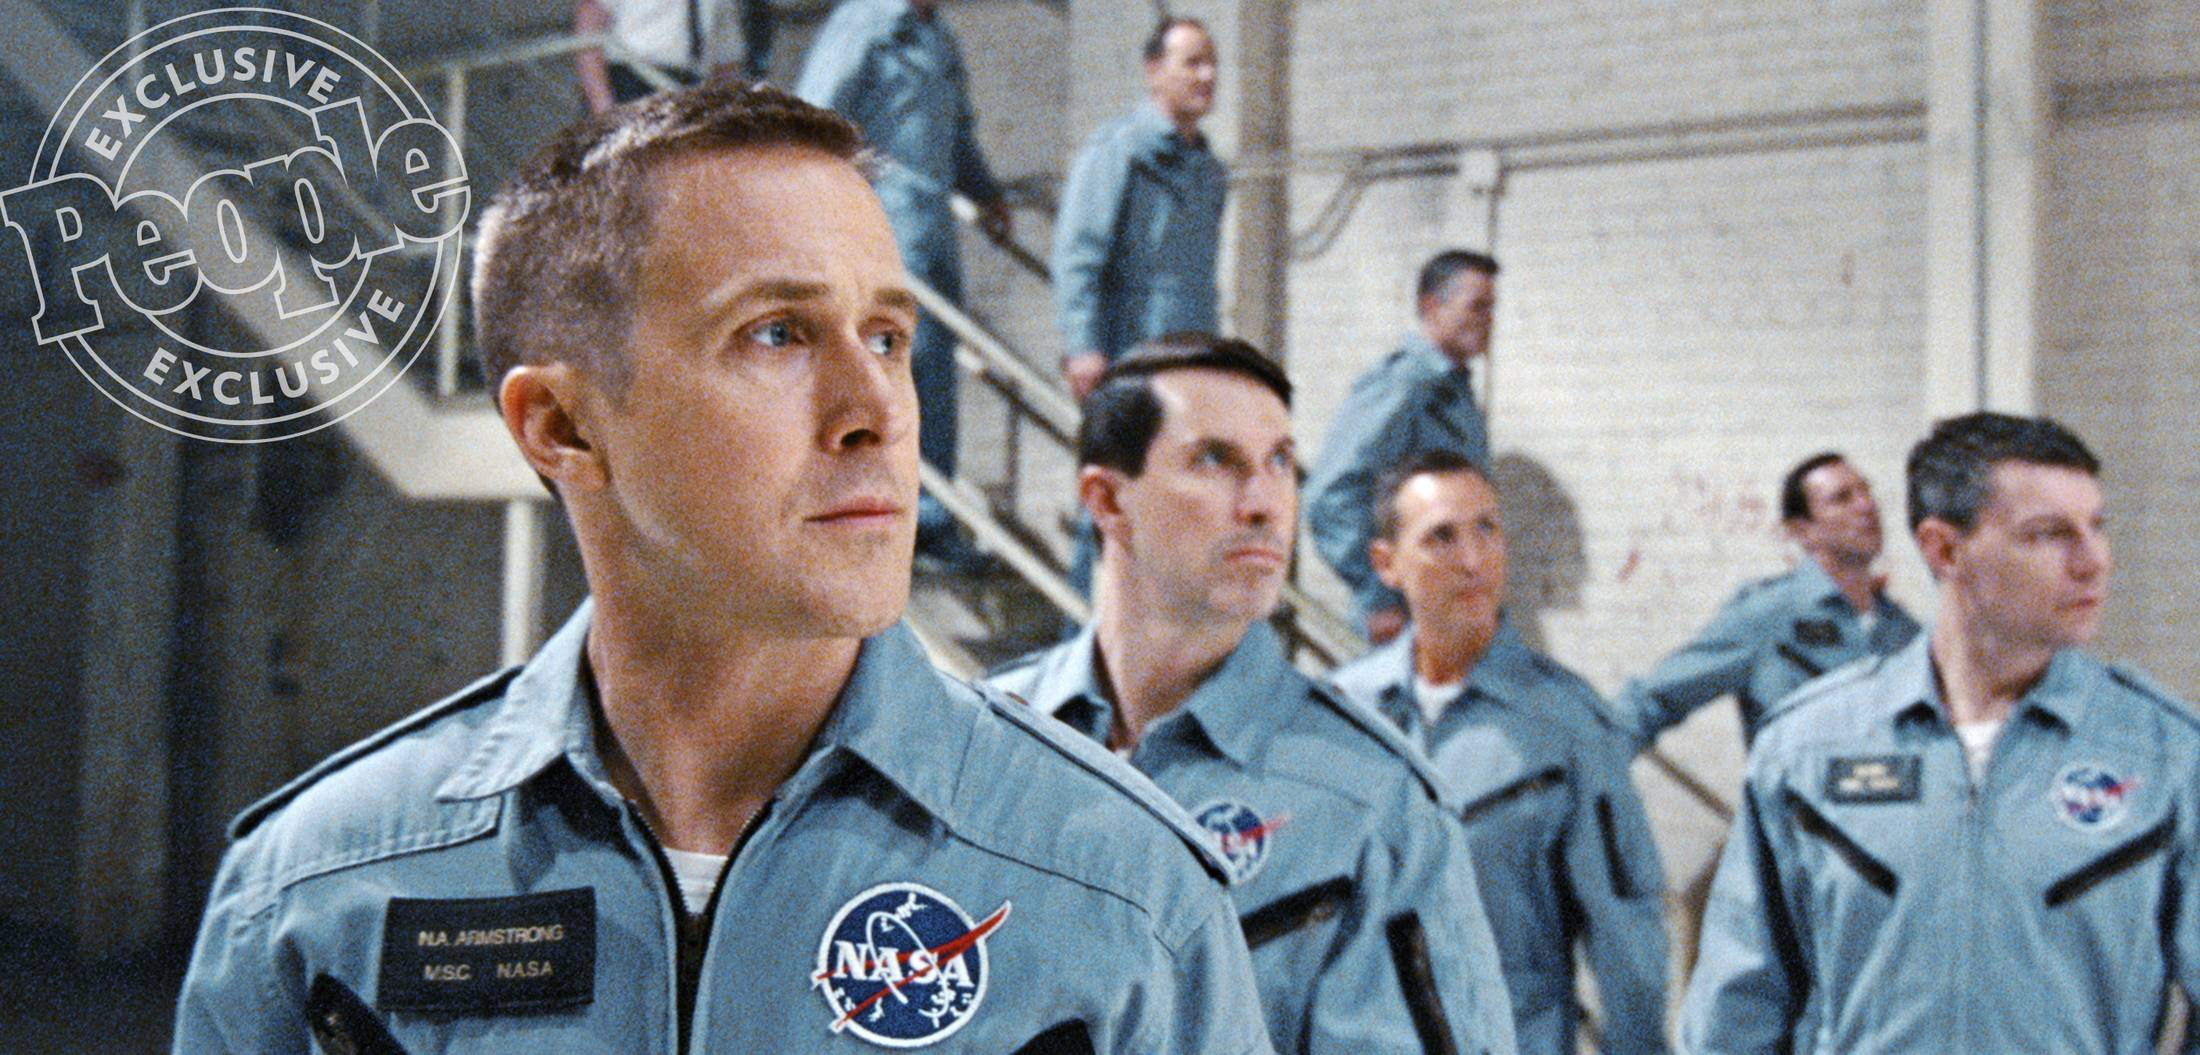 first-photos-of-ryan-gosling-as-neil-armstrong-in-the-moon-landing-film-first-man1